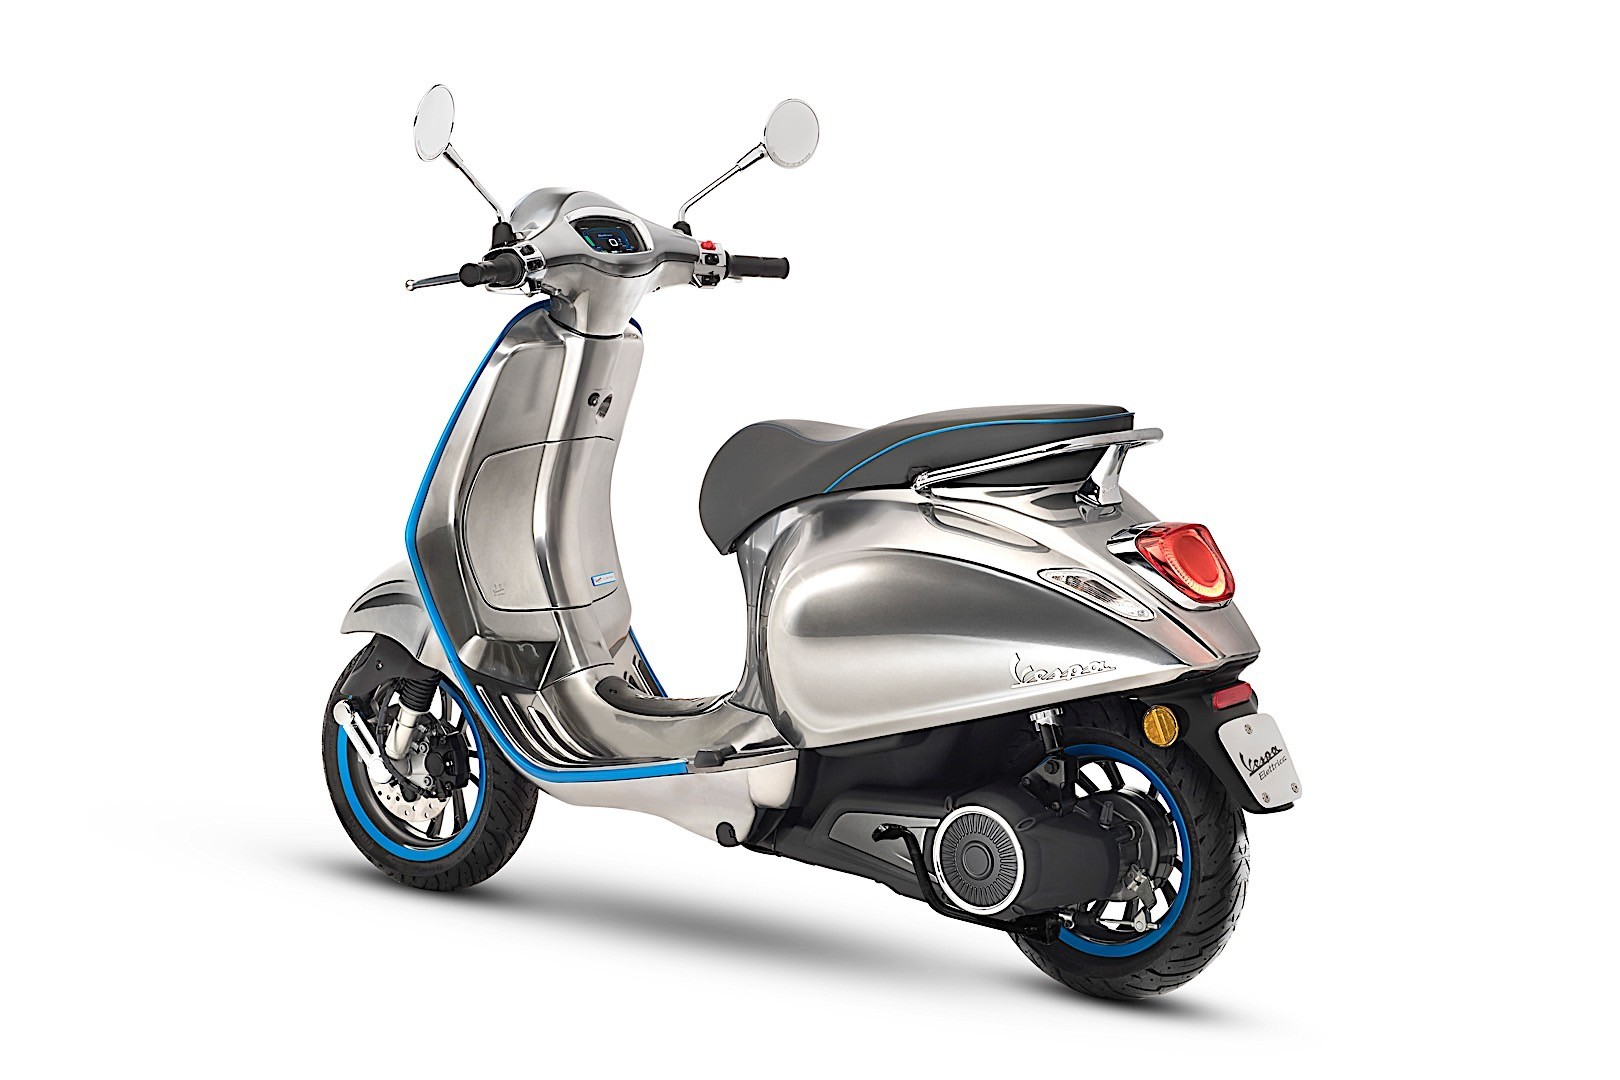 2018 Vespa Elettrica Goes Live At Eicma Autoevolution